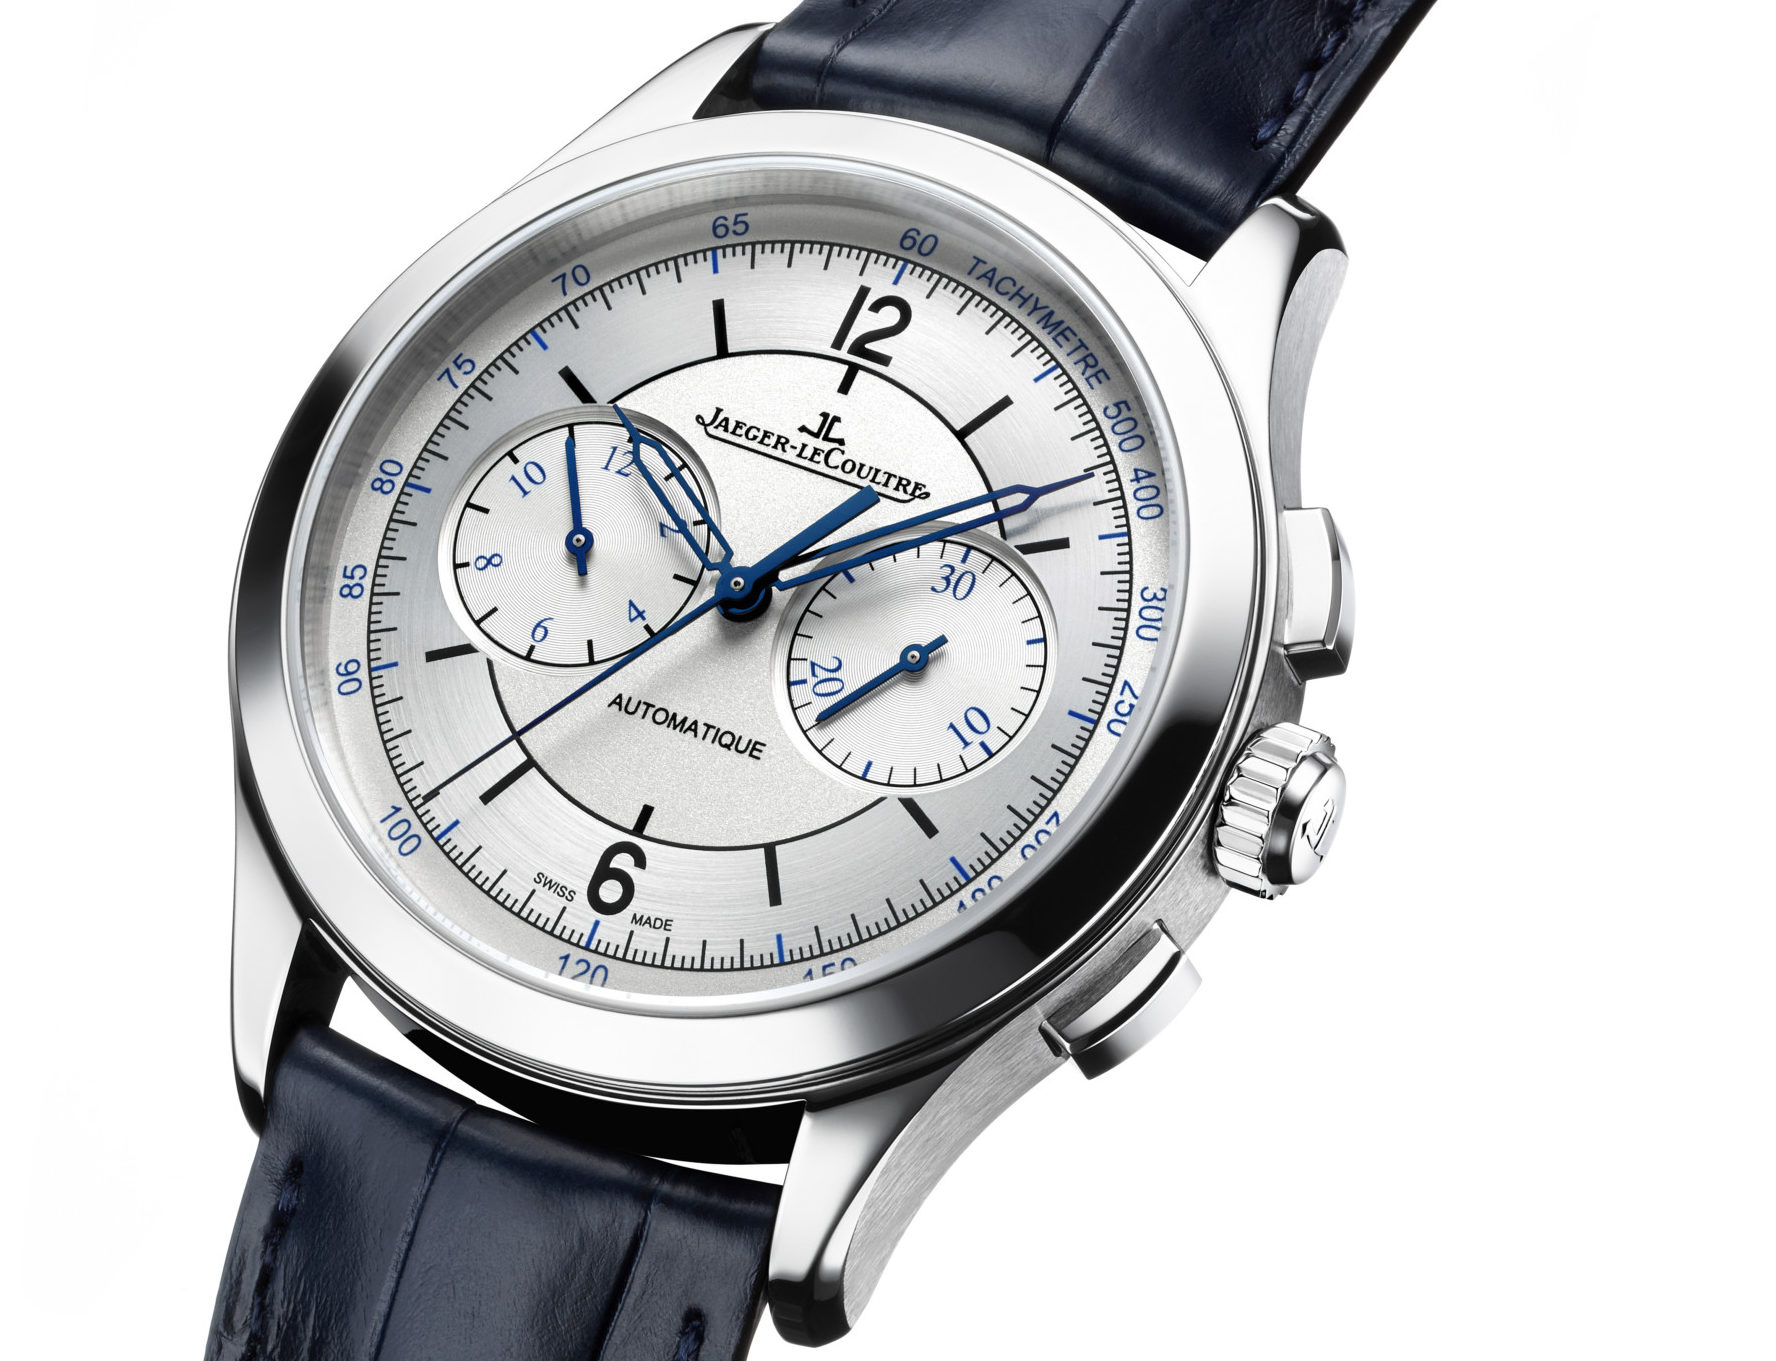 Jaeger-LeCoultre Master Chronograph_profile